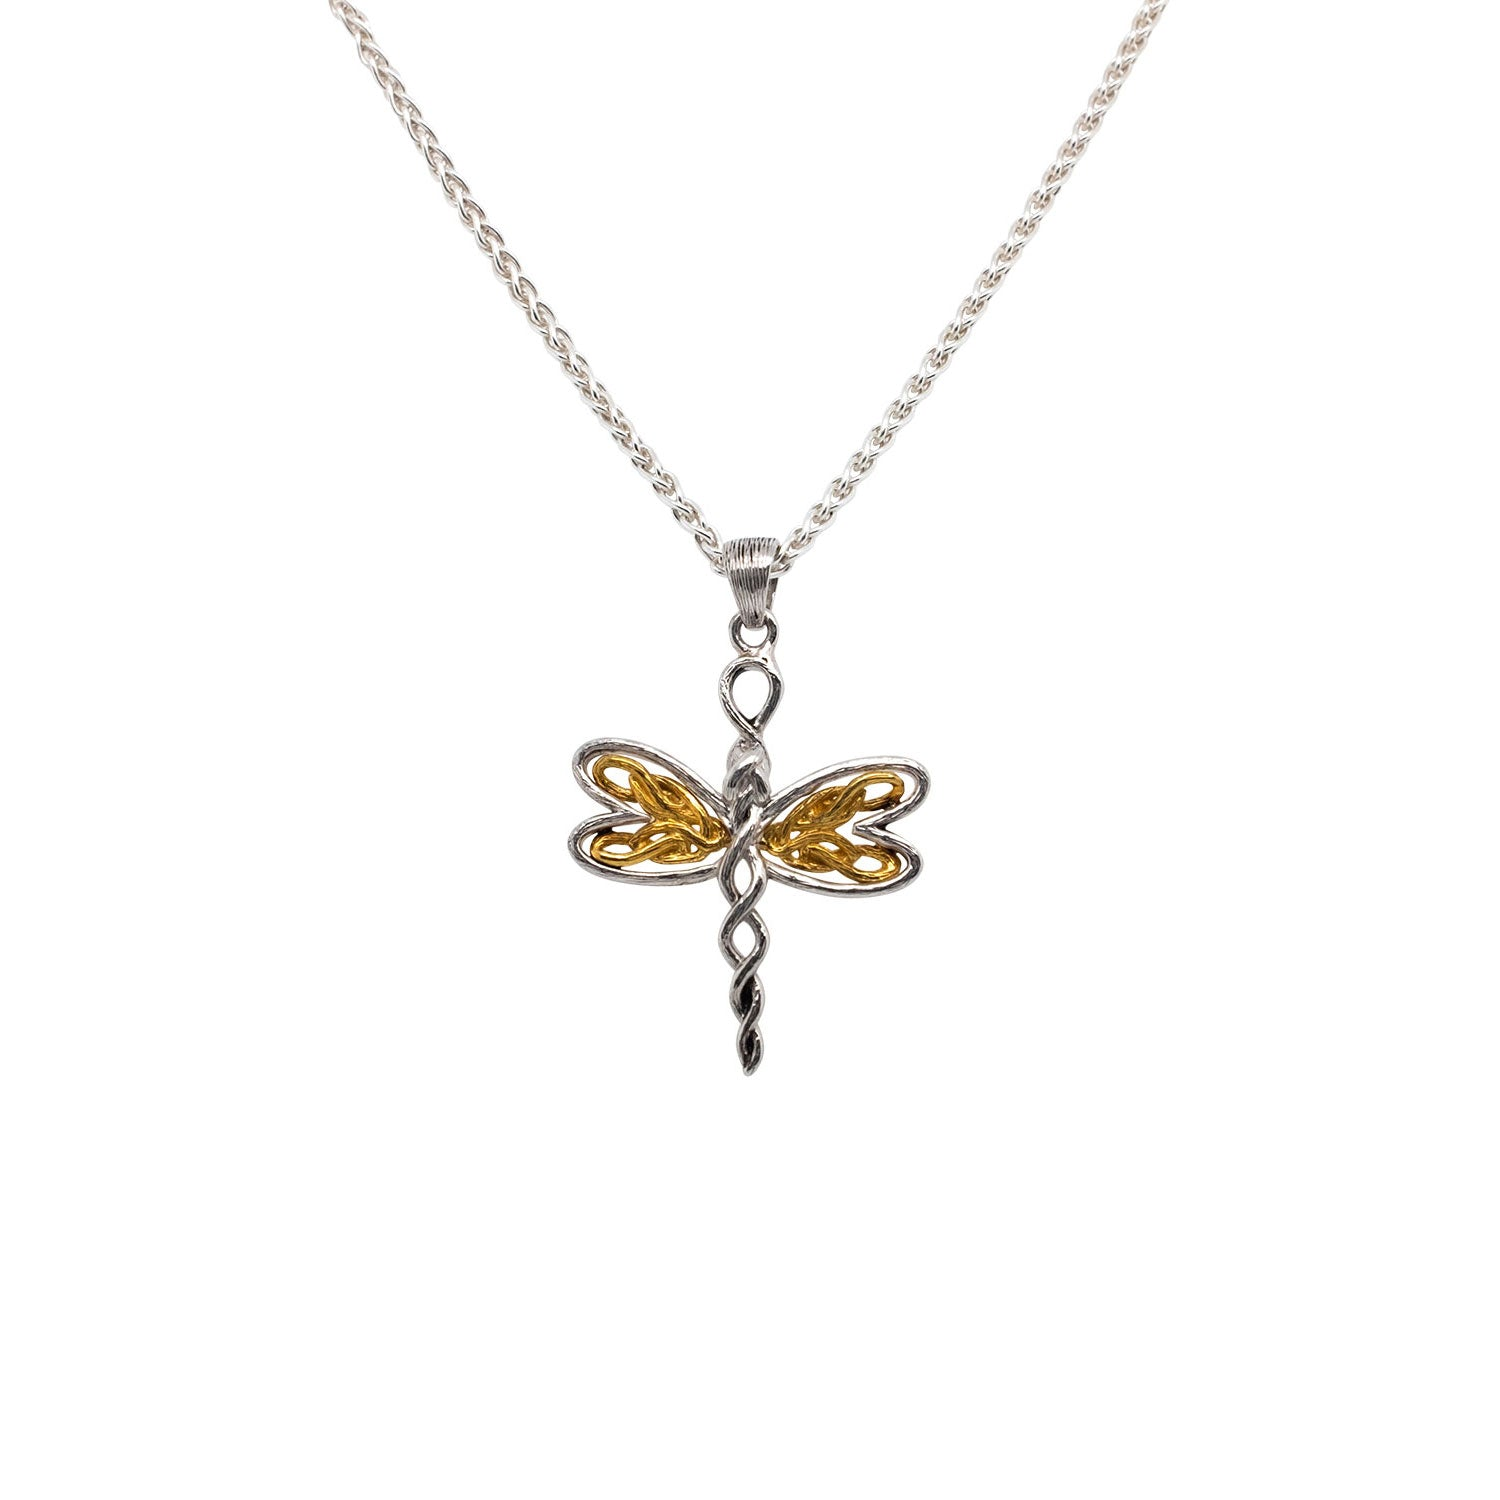 Pendant Rhodium 10k Rose Petite Dragonfly Pendant from welch and company jewelers near syracuse ny